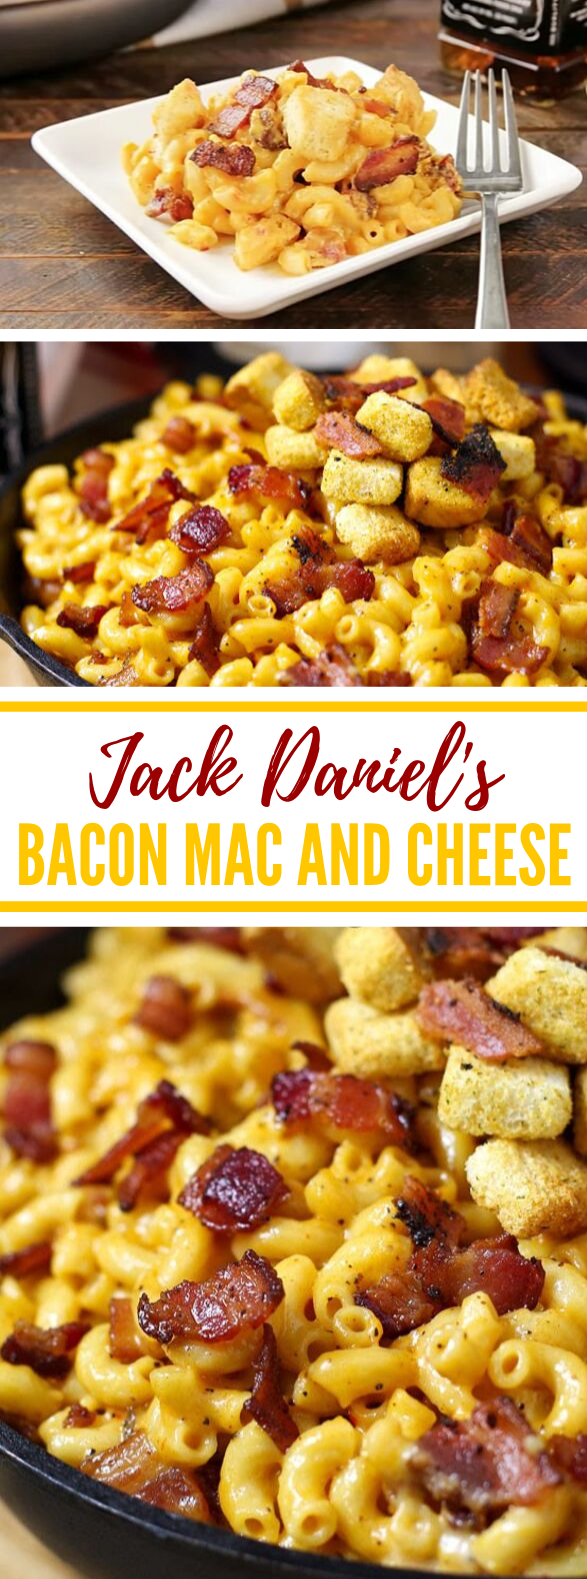 Jack Daniel's Bacon Mac and Cheese #dinner #comfortfood